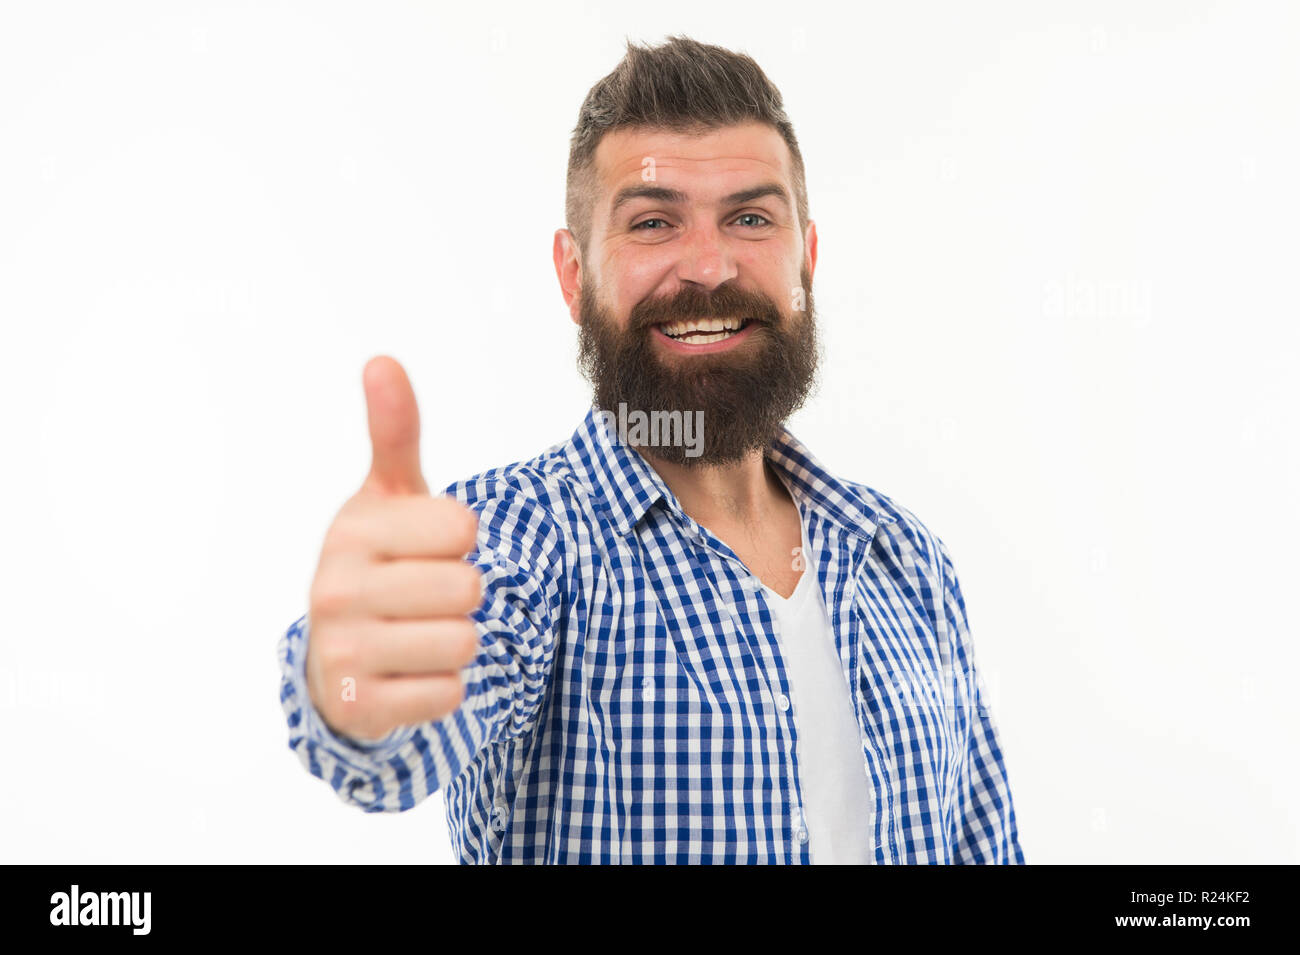 Great choice. Man bearded hipster recommend or approve something isolated white background. Appreciate your choice. Thumb up gesture symbol of approvement. Approve or endorse with hand gesture. - Stock Image